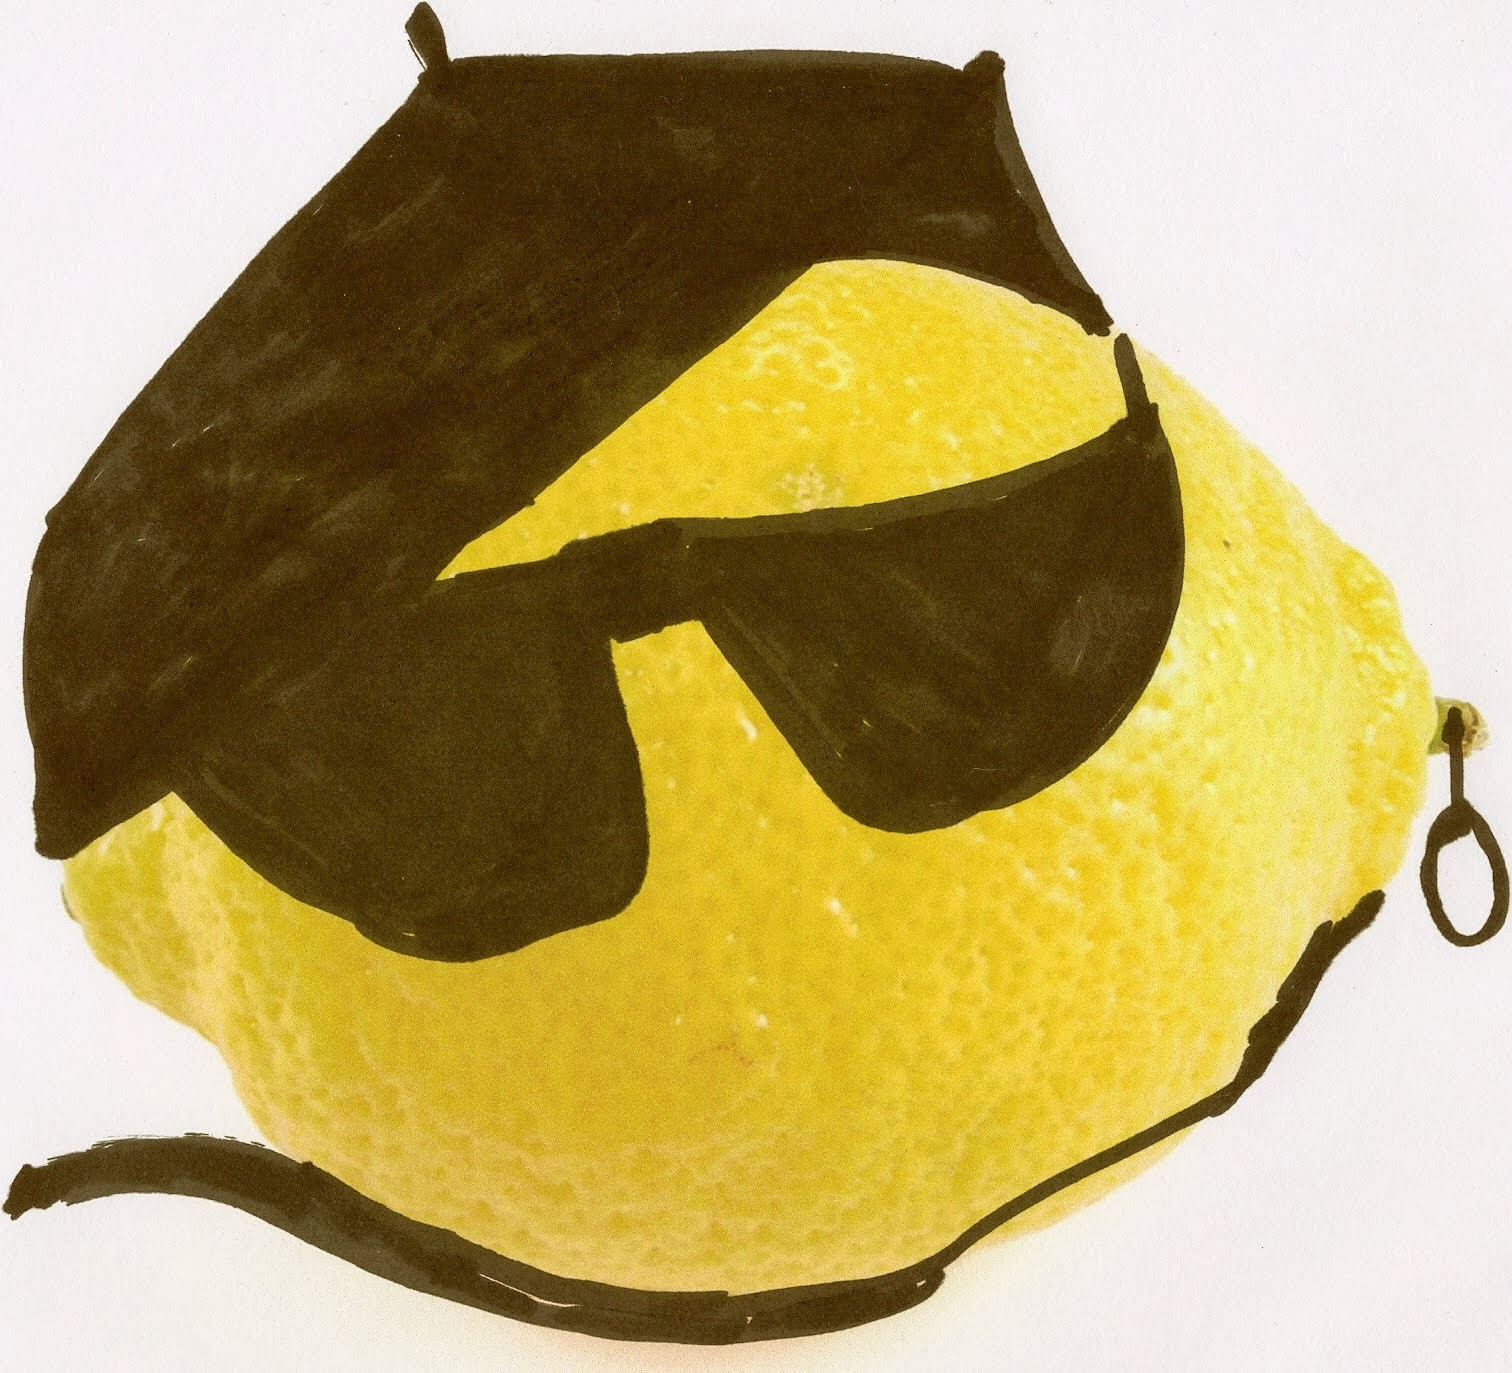 @dropthatlemon: The Most Interesting Lemon In the Sidebar